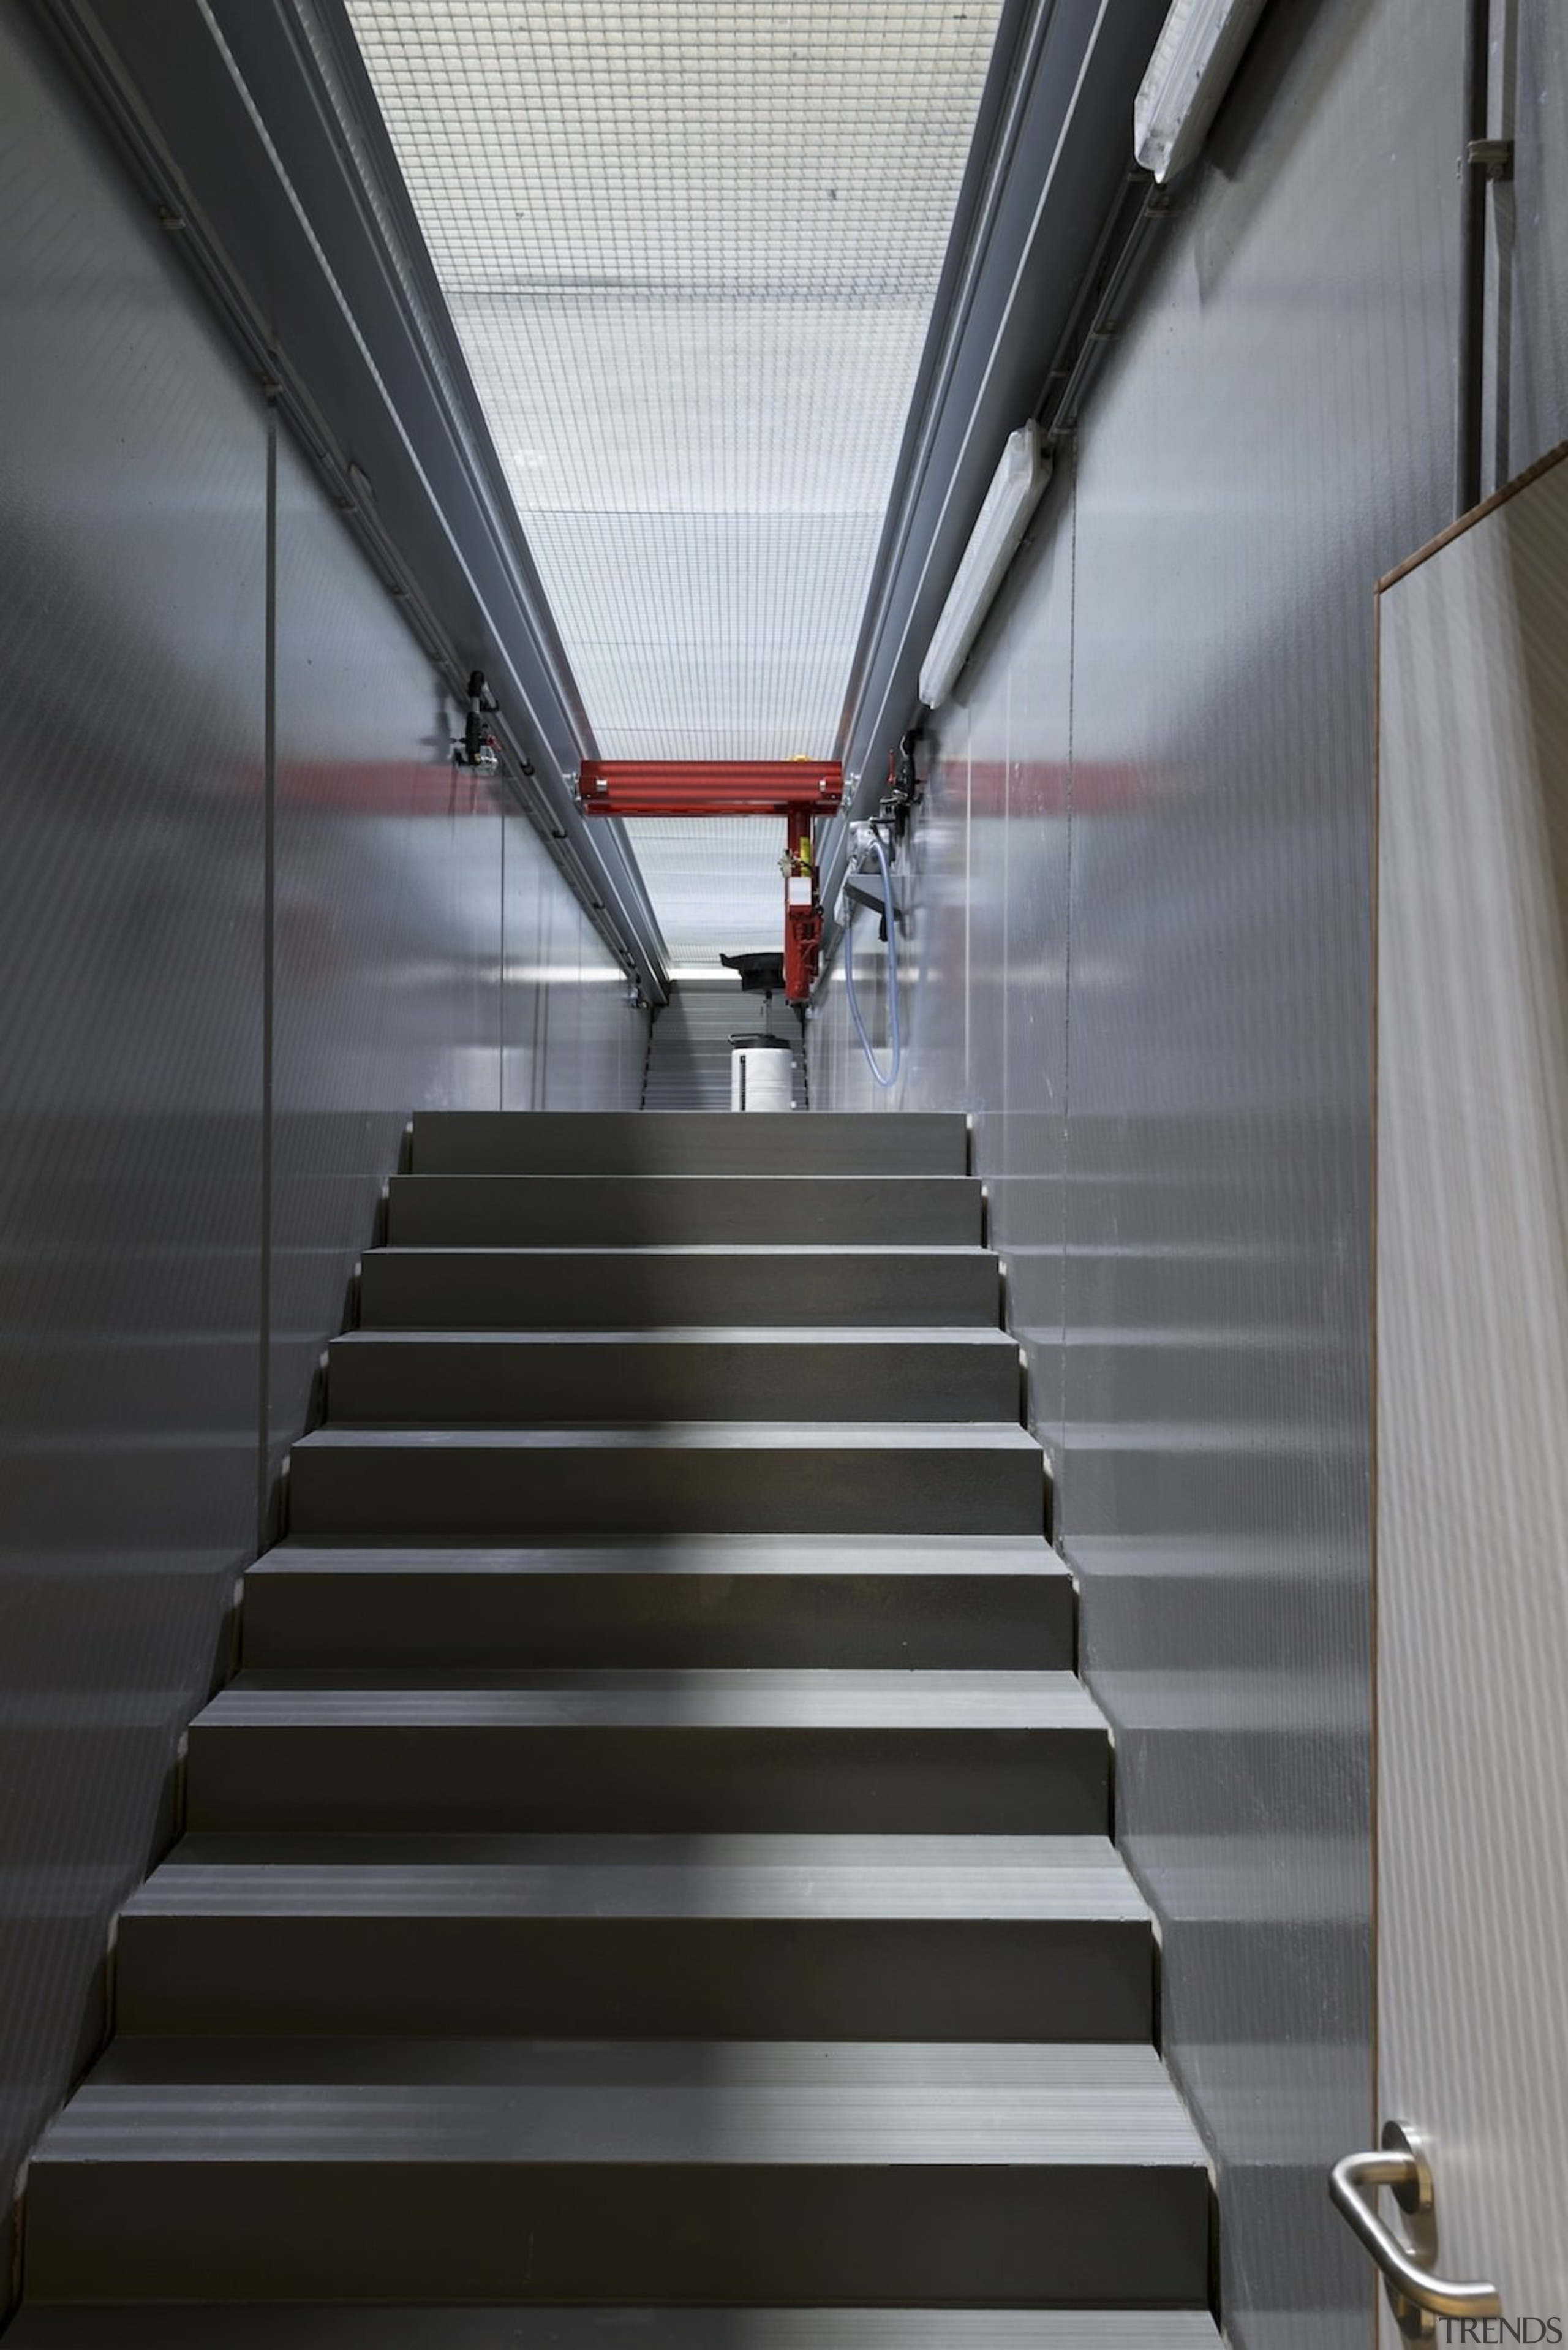 569 firestation - 569 firestation - architecture | architecture, daylighting, light, line, stairs, structure, gray, black